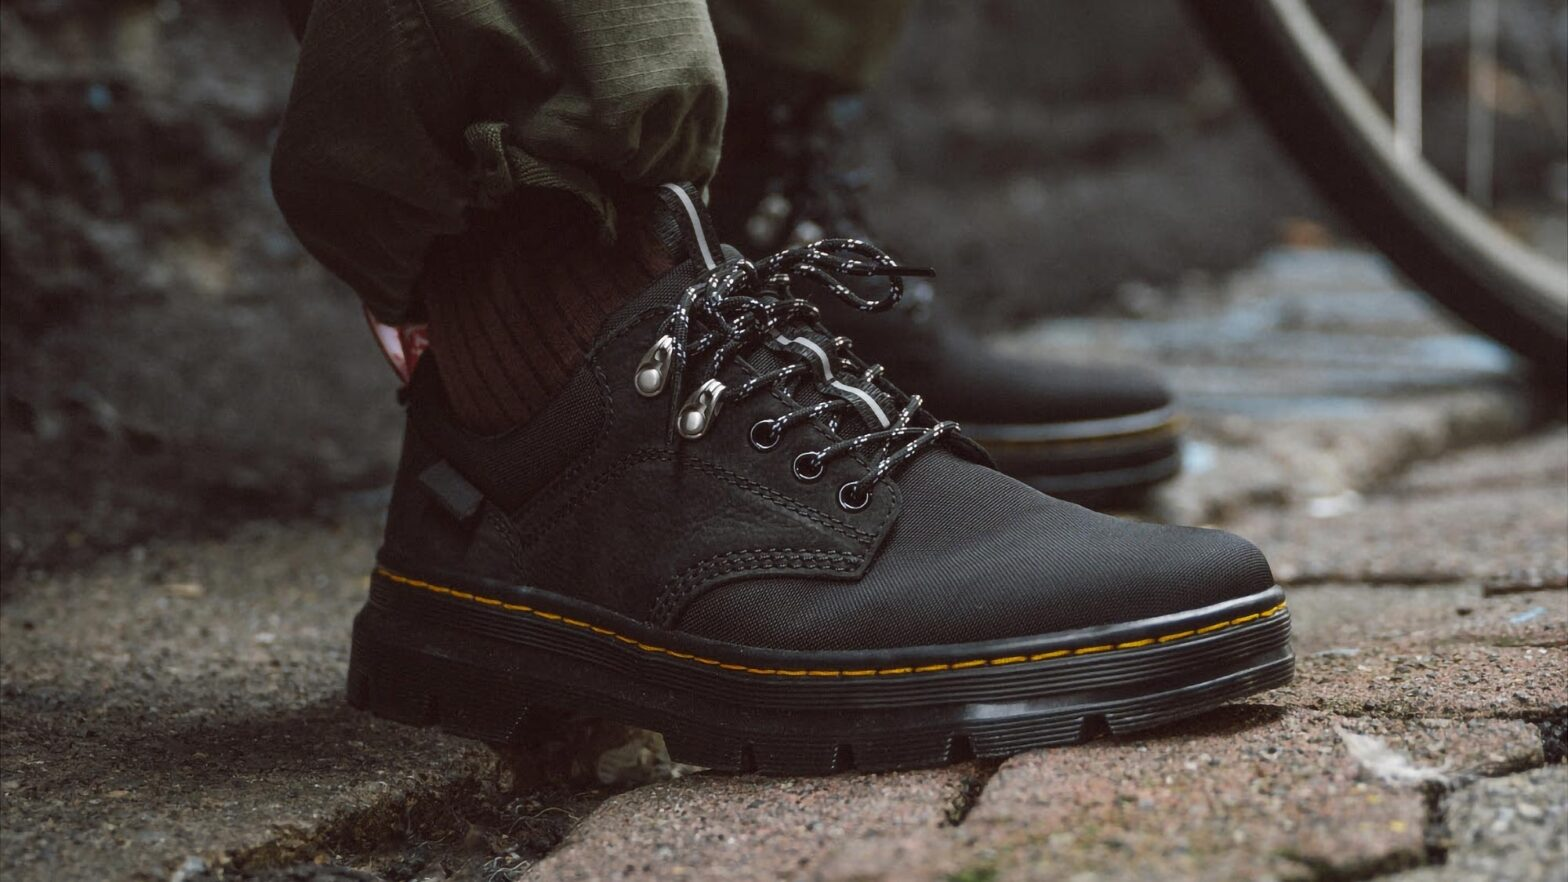 Dr. Martens x Herschel Supply Boots and Shoes